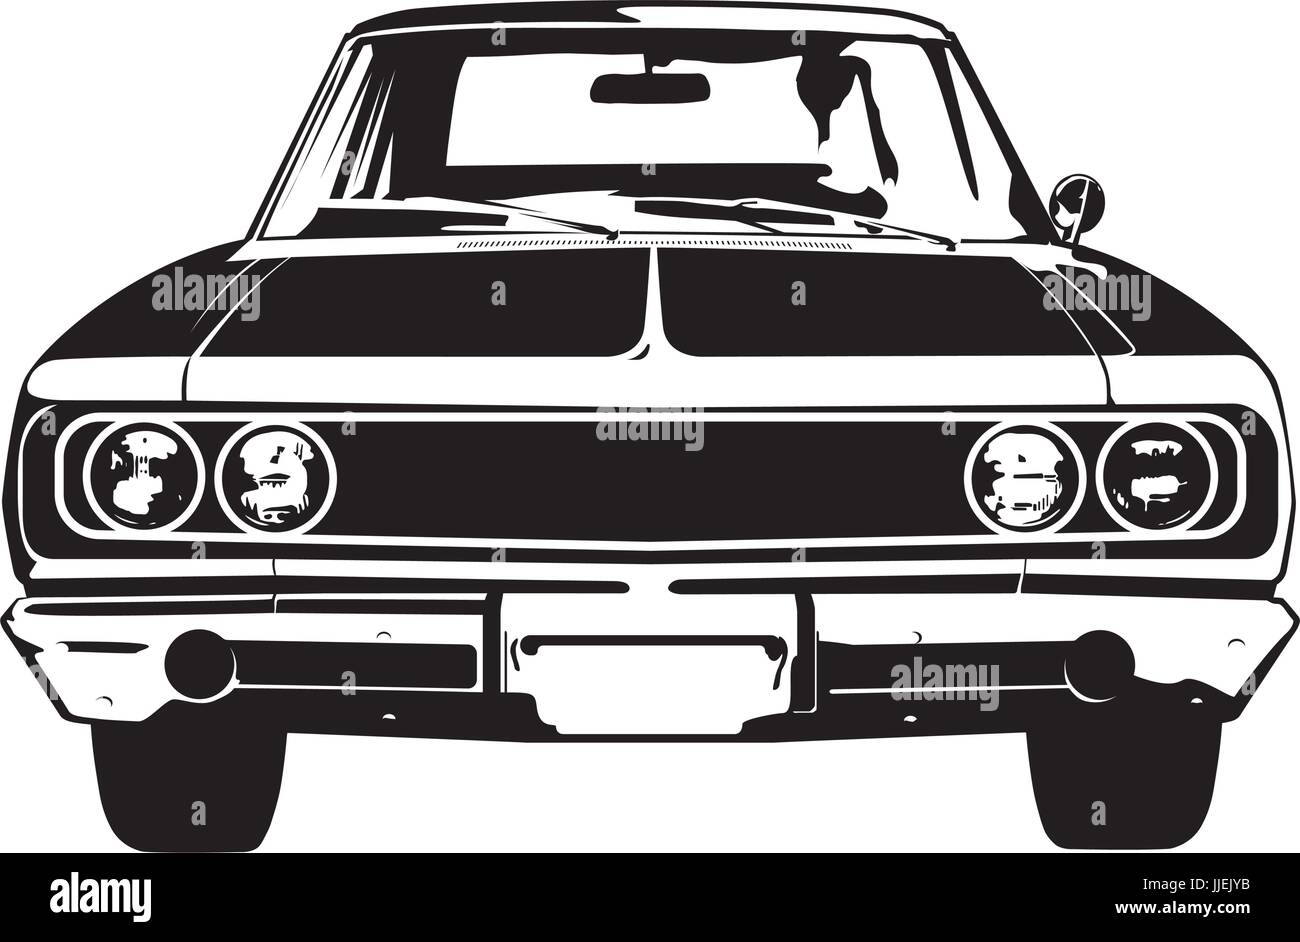 Front View Silhouette Of Vintage American Muscle Car Stock Vector